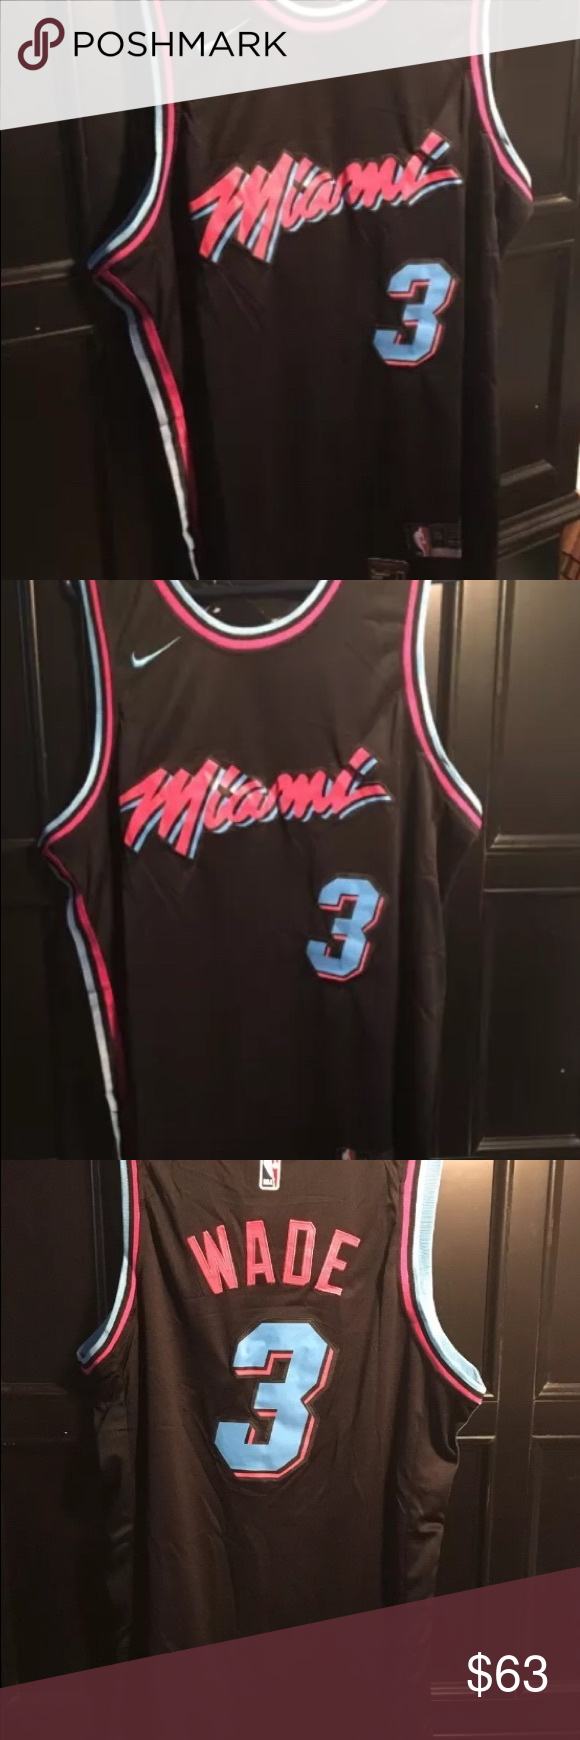 Miami Heat Black Vice City Jersey. Stitched. Large Mens Large Miami Vice City  Jersey. Dwyane Wade Miami Vice City Jersey.  3 City Edition ships same or  next ... 88ca7ffa8